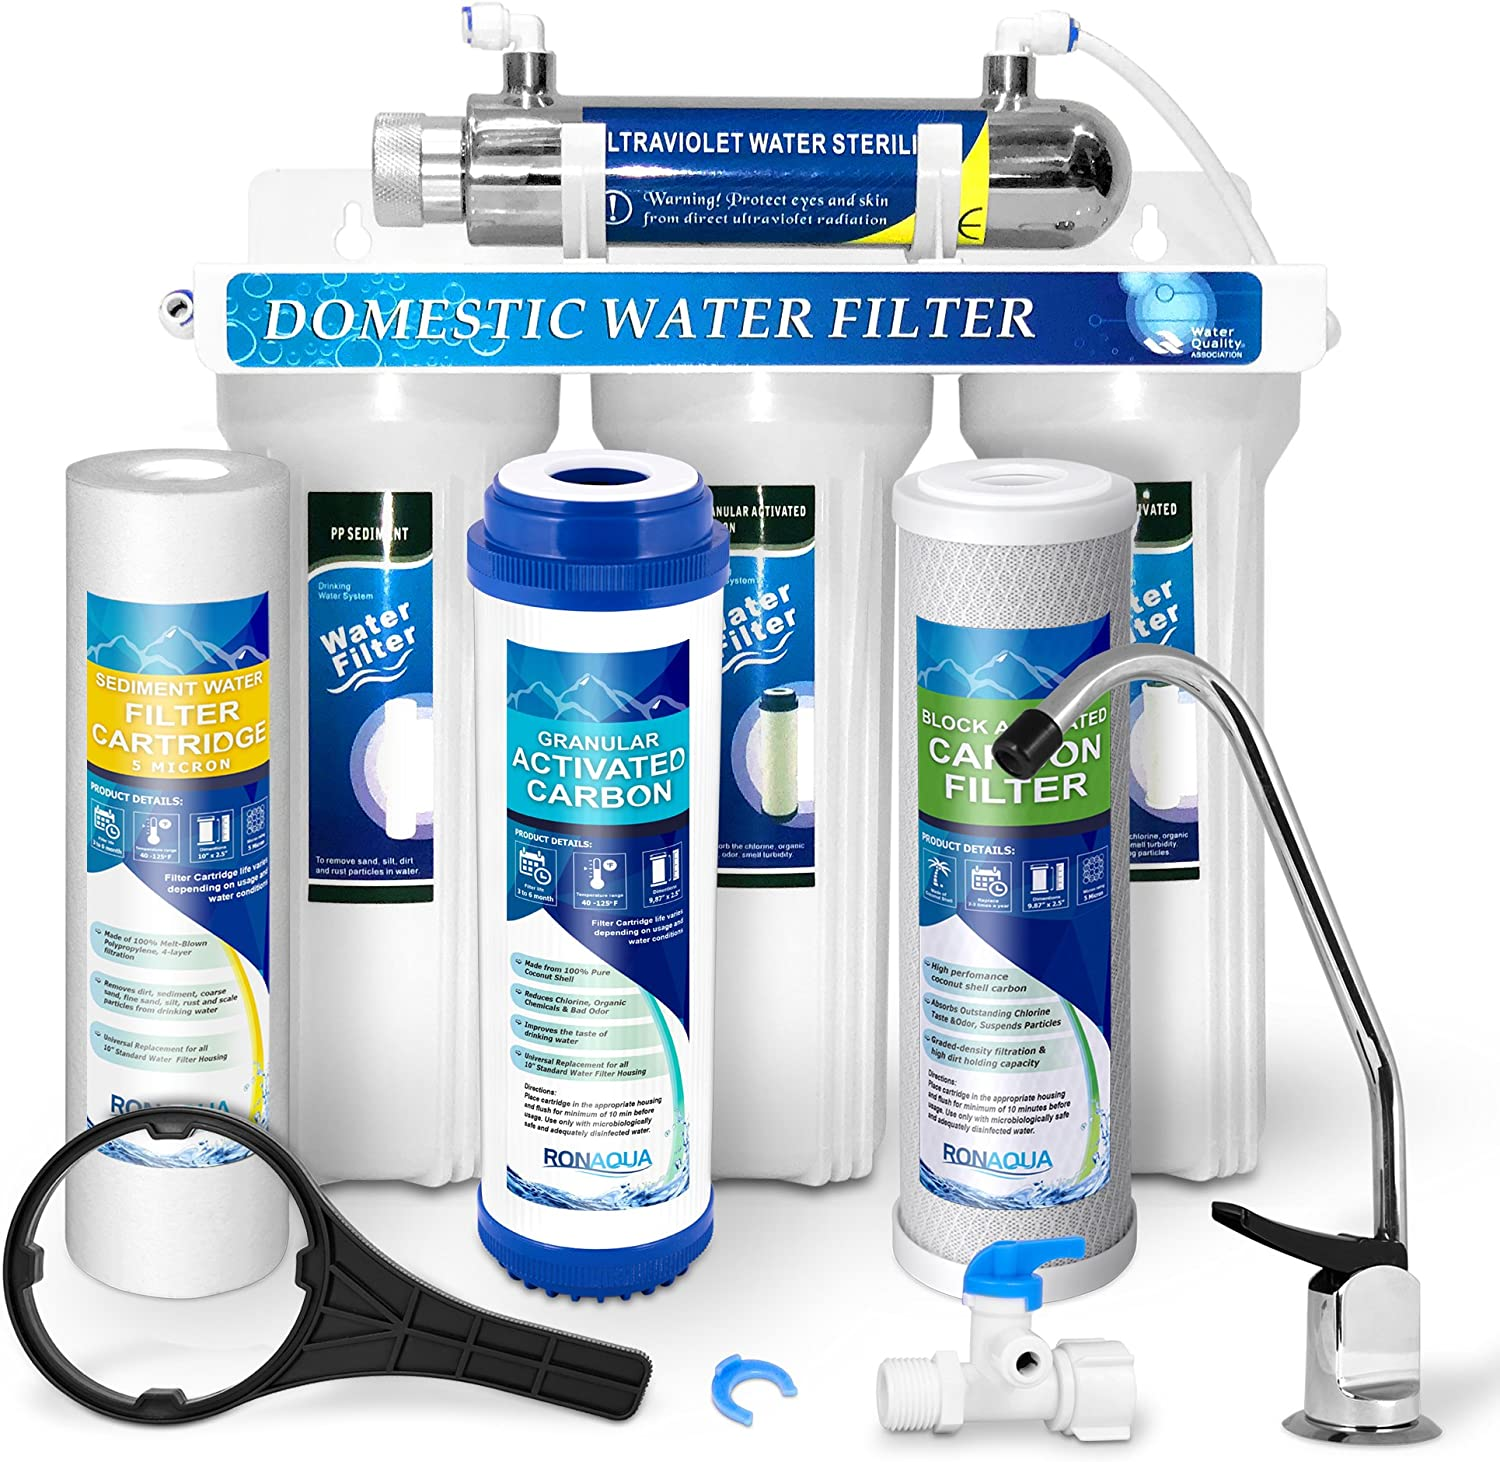 Premium Under Sink Direct Connect Water Filtration System & Ultraviolet Light Water Sterilizer 6W, 1GPM with 100% lead-free Chrome faucet -Removes Chlorine, Bad Tastes, Odors & 99.99% of Contaminants